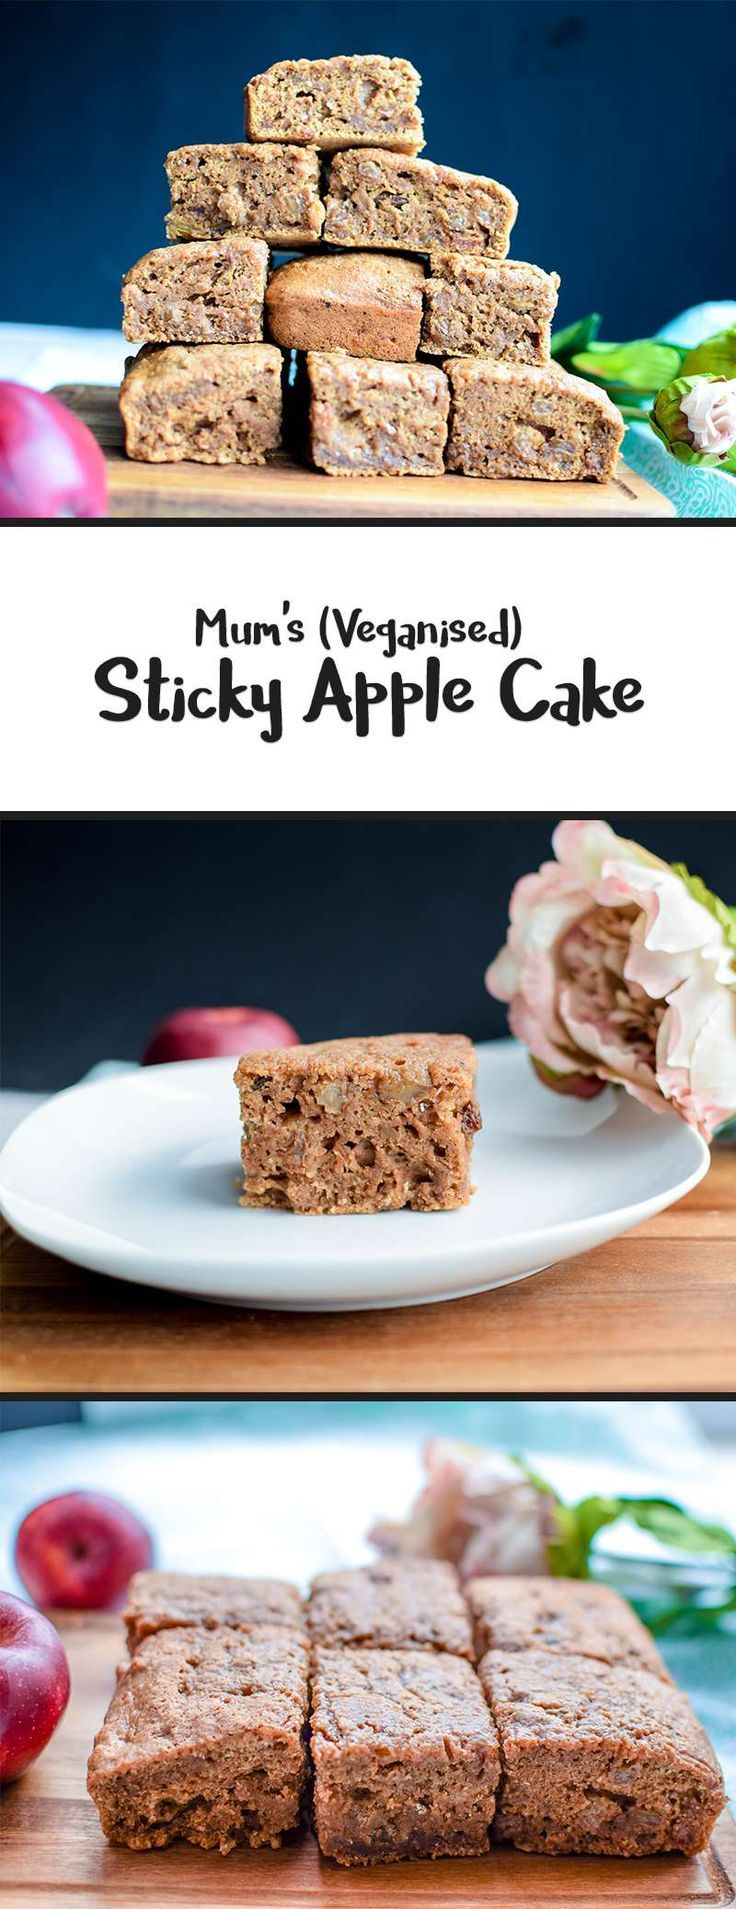 Sticky Apple Cake - a delicious vegan tray bake that can be enjoyed hot, on it's own or with custard, or cold. Egg free and dairy free.